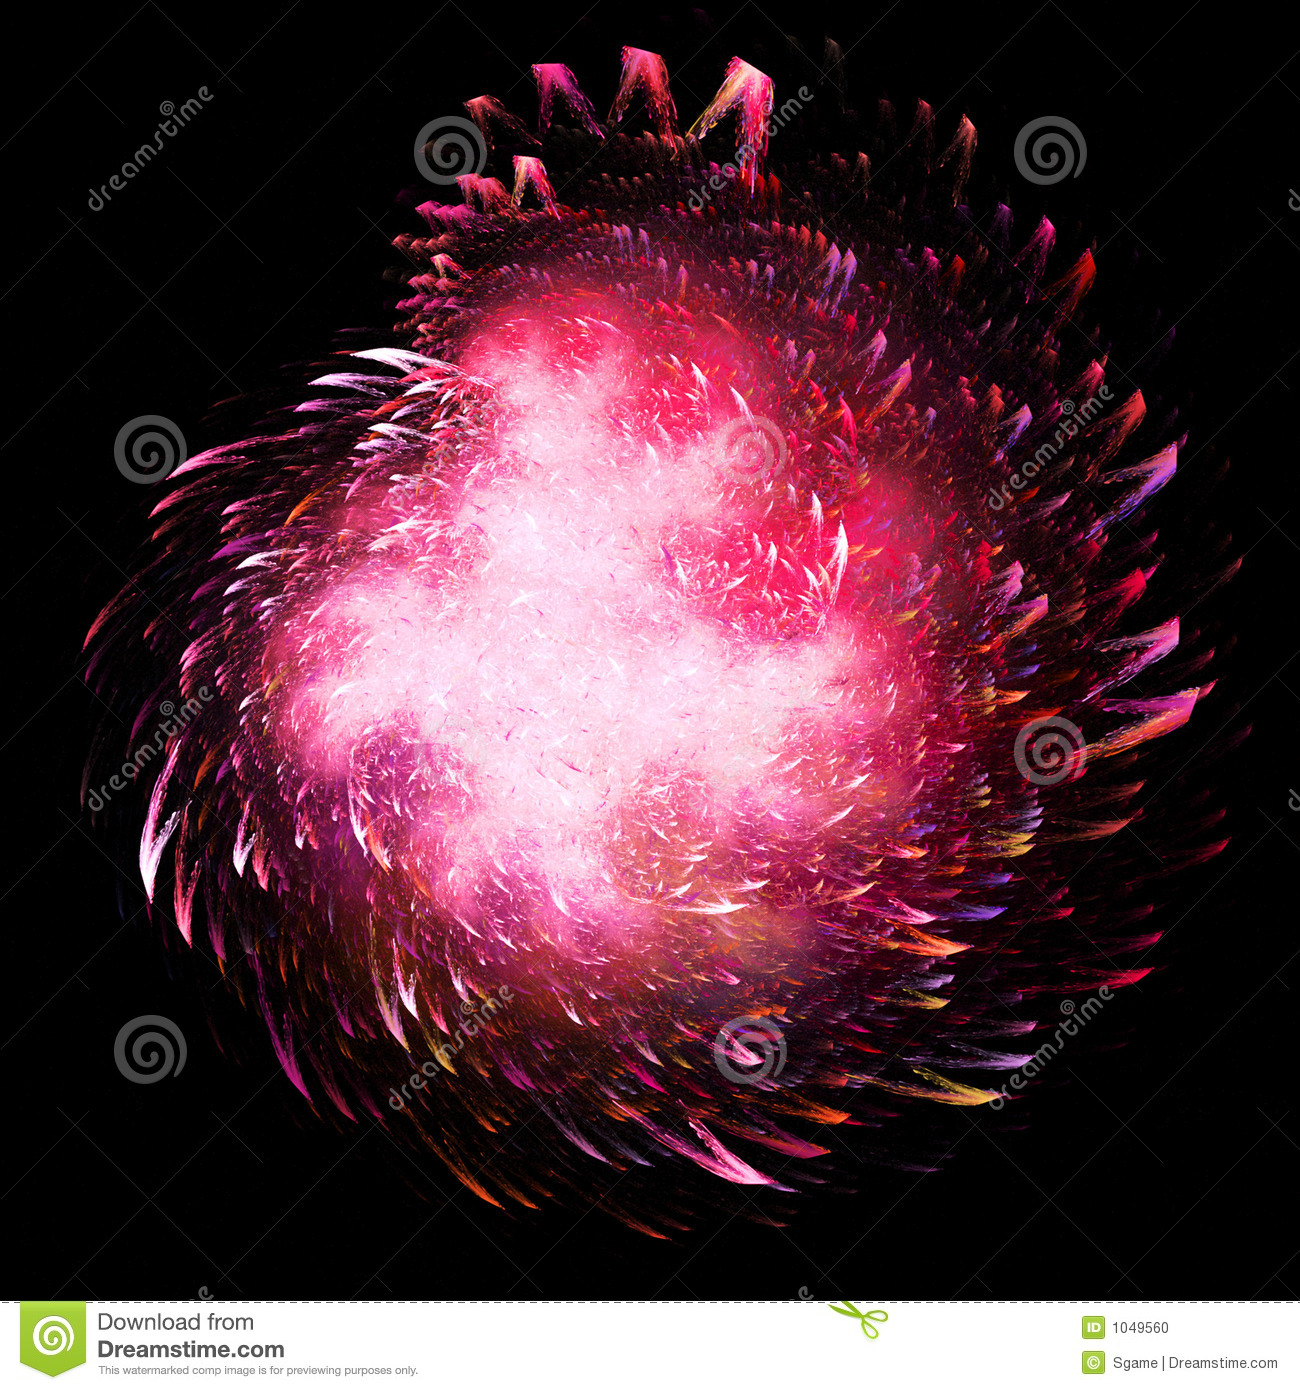 1049560 in addition 2 moreover Ee287ddd035df5cfae987ead0e4acf3c Chinese Dating App Momo Sees Record Revenue Growth Thanks To Live Streaming also Stock Foto Roze Vuurwerk Image1049560 also Lenovo K50 T3S 5 5 Inch FHD 2GB 16GB MT6752 1 7GHz Octa Core 4G Smartphone P 1049560. on 1049560